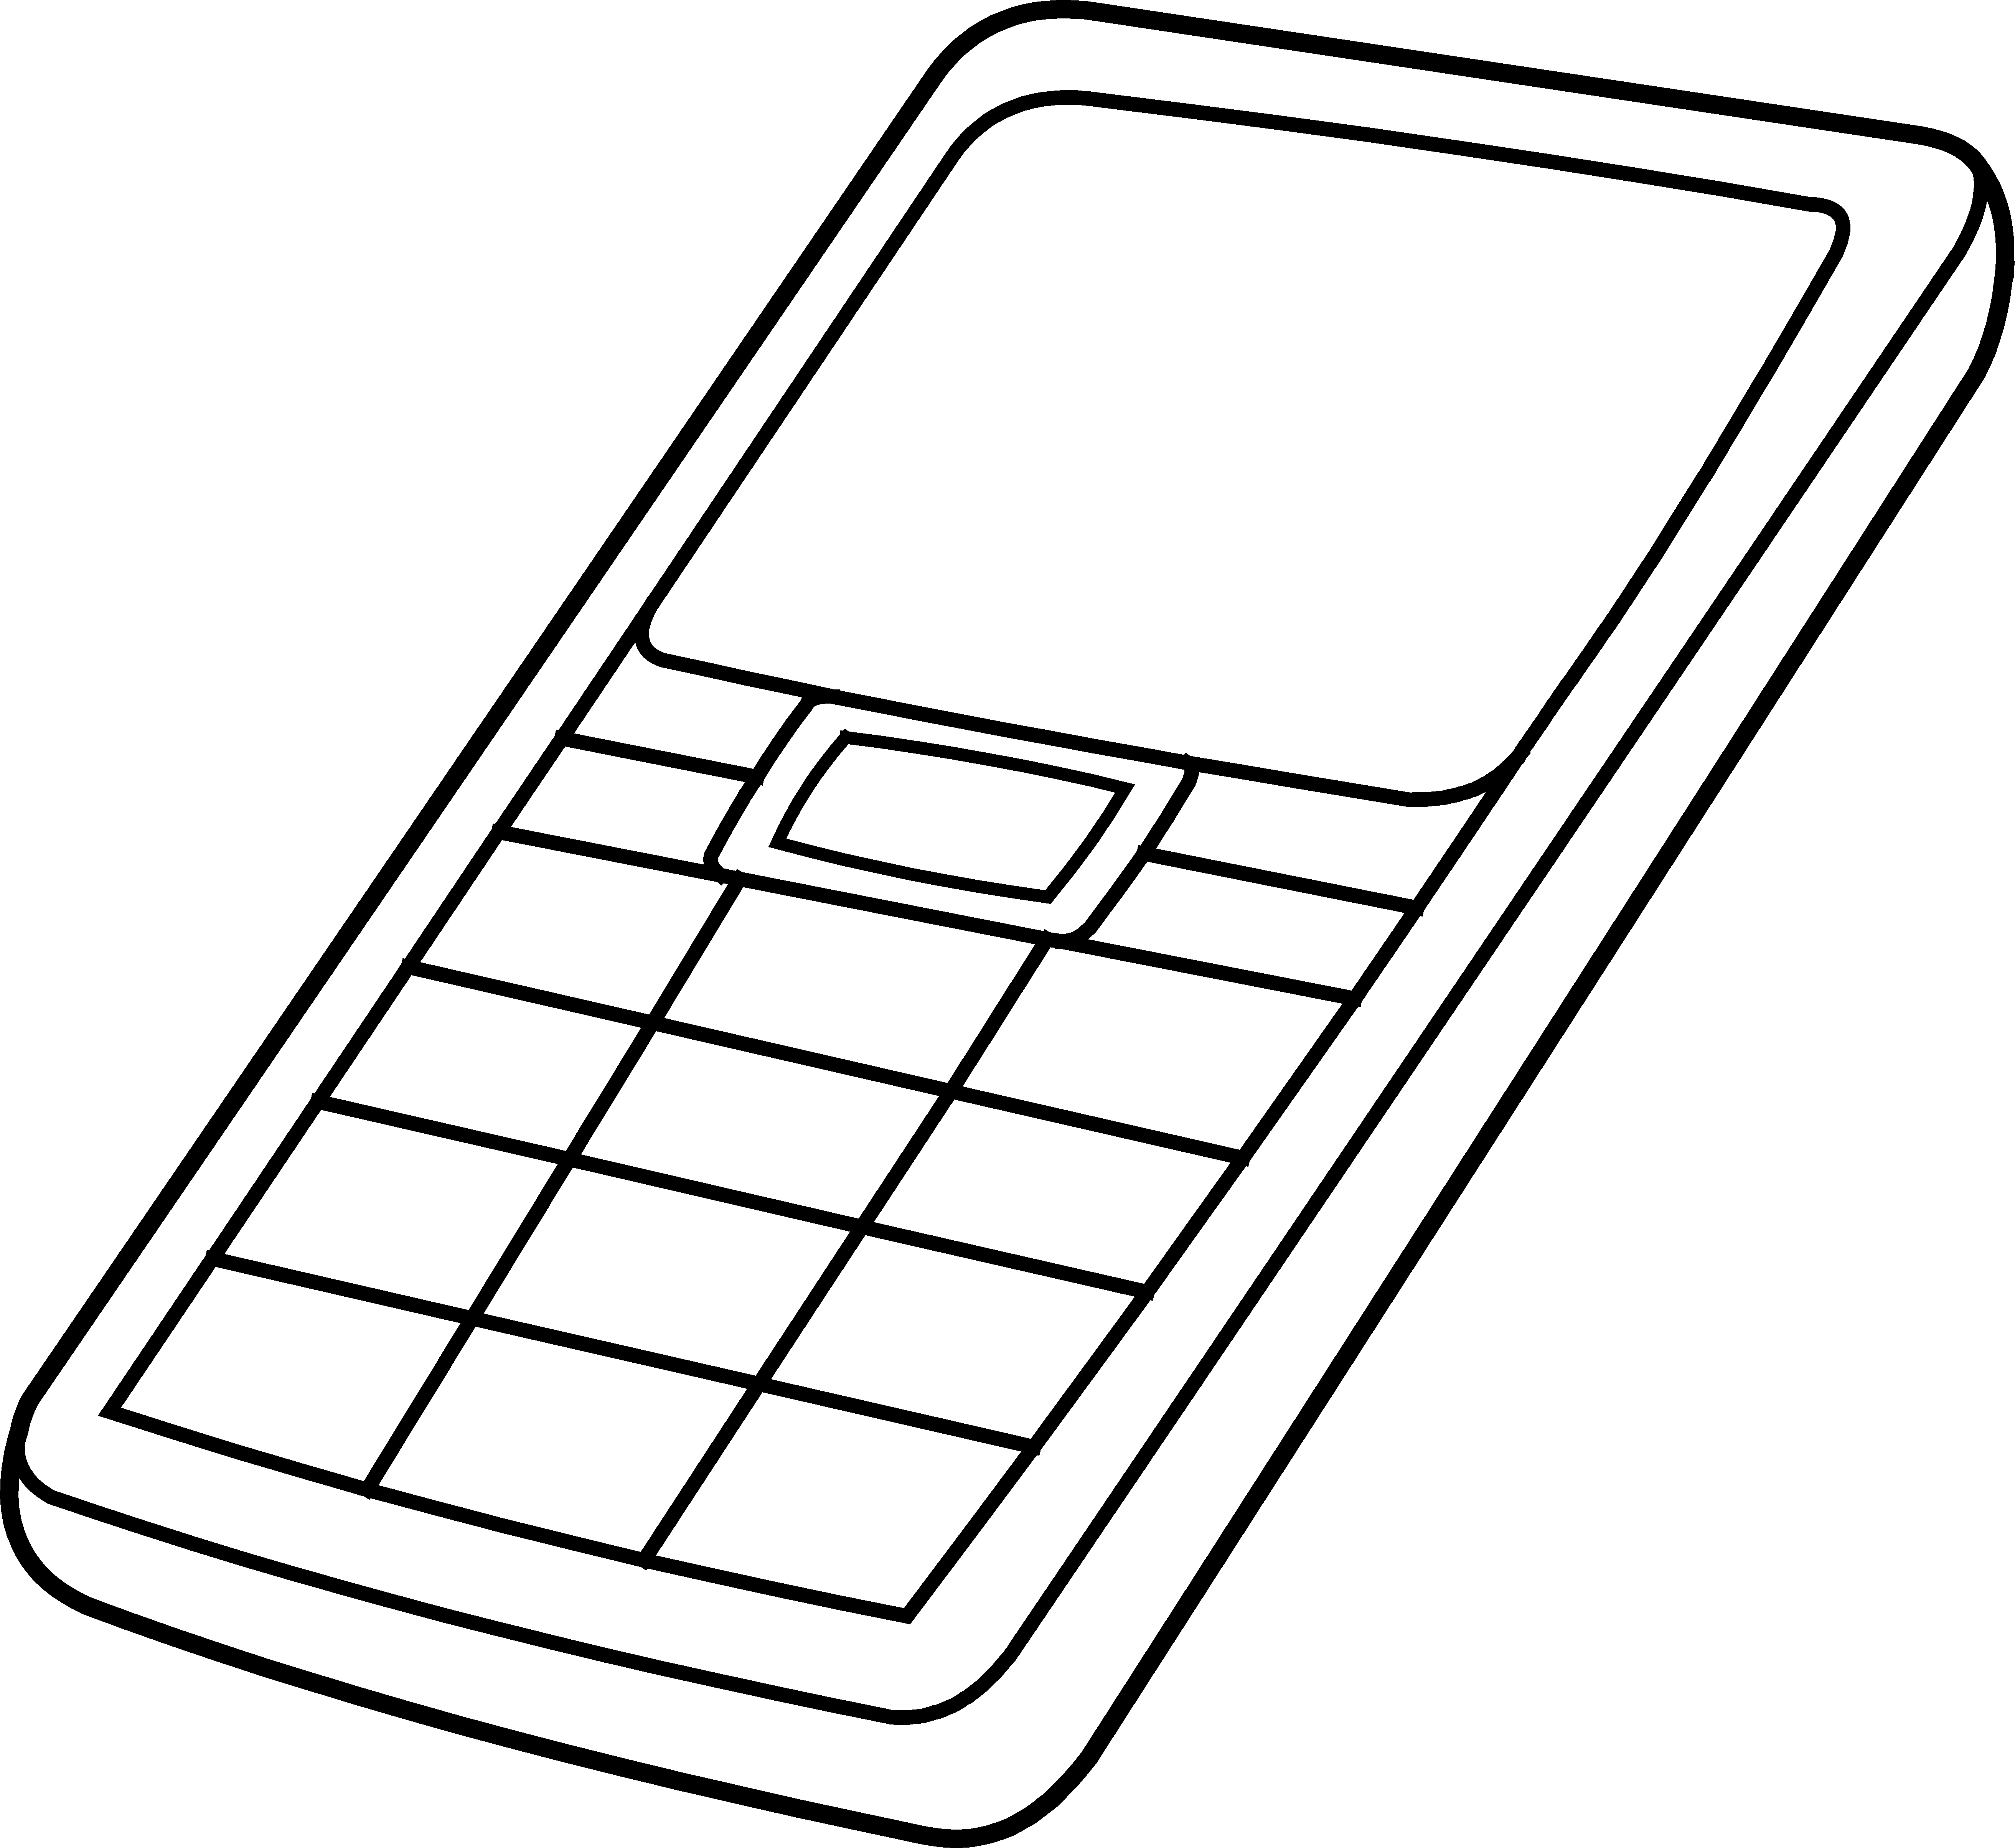 Cell phone clip art. Free download clipart for mobile